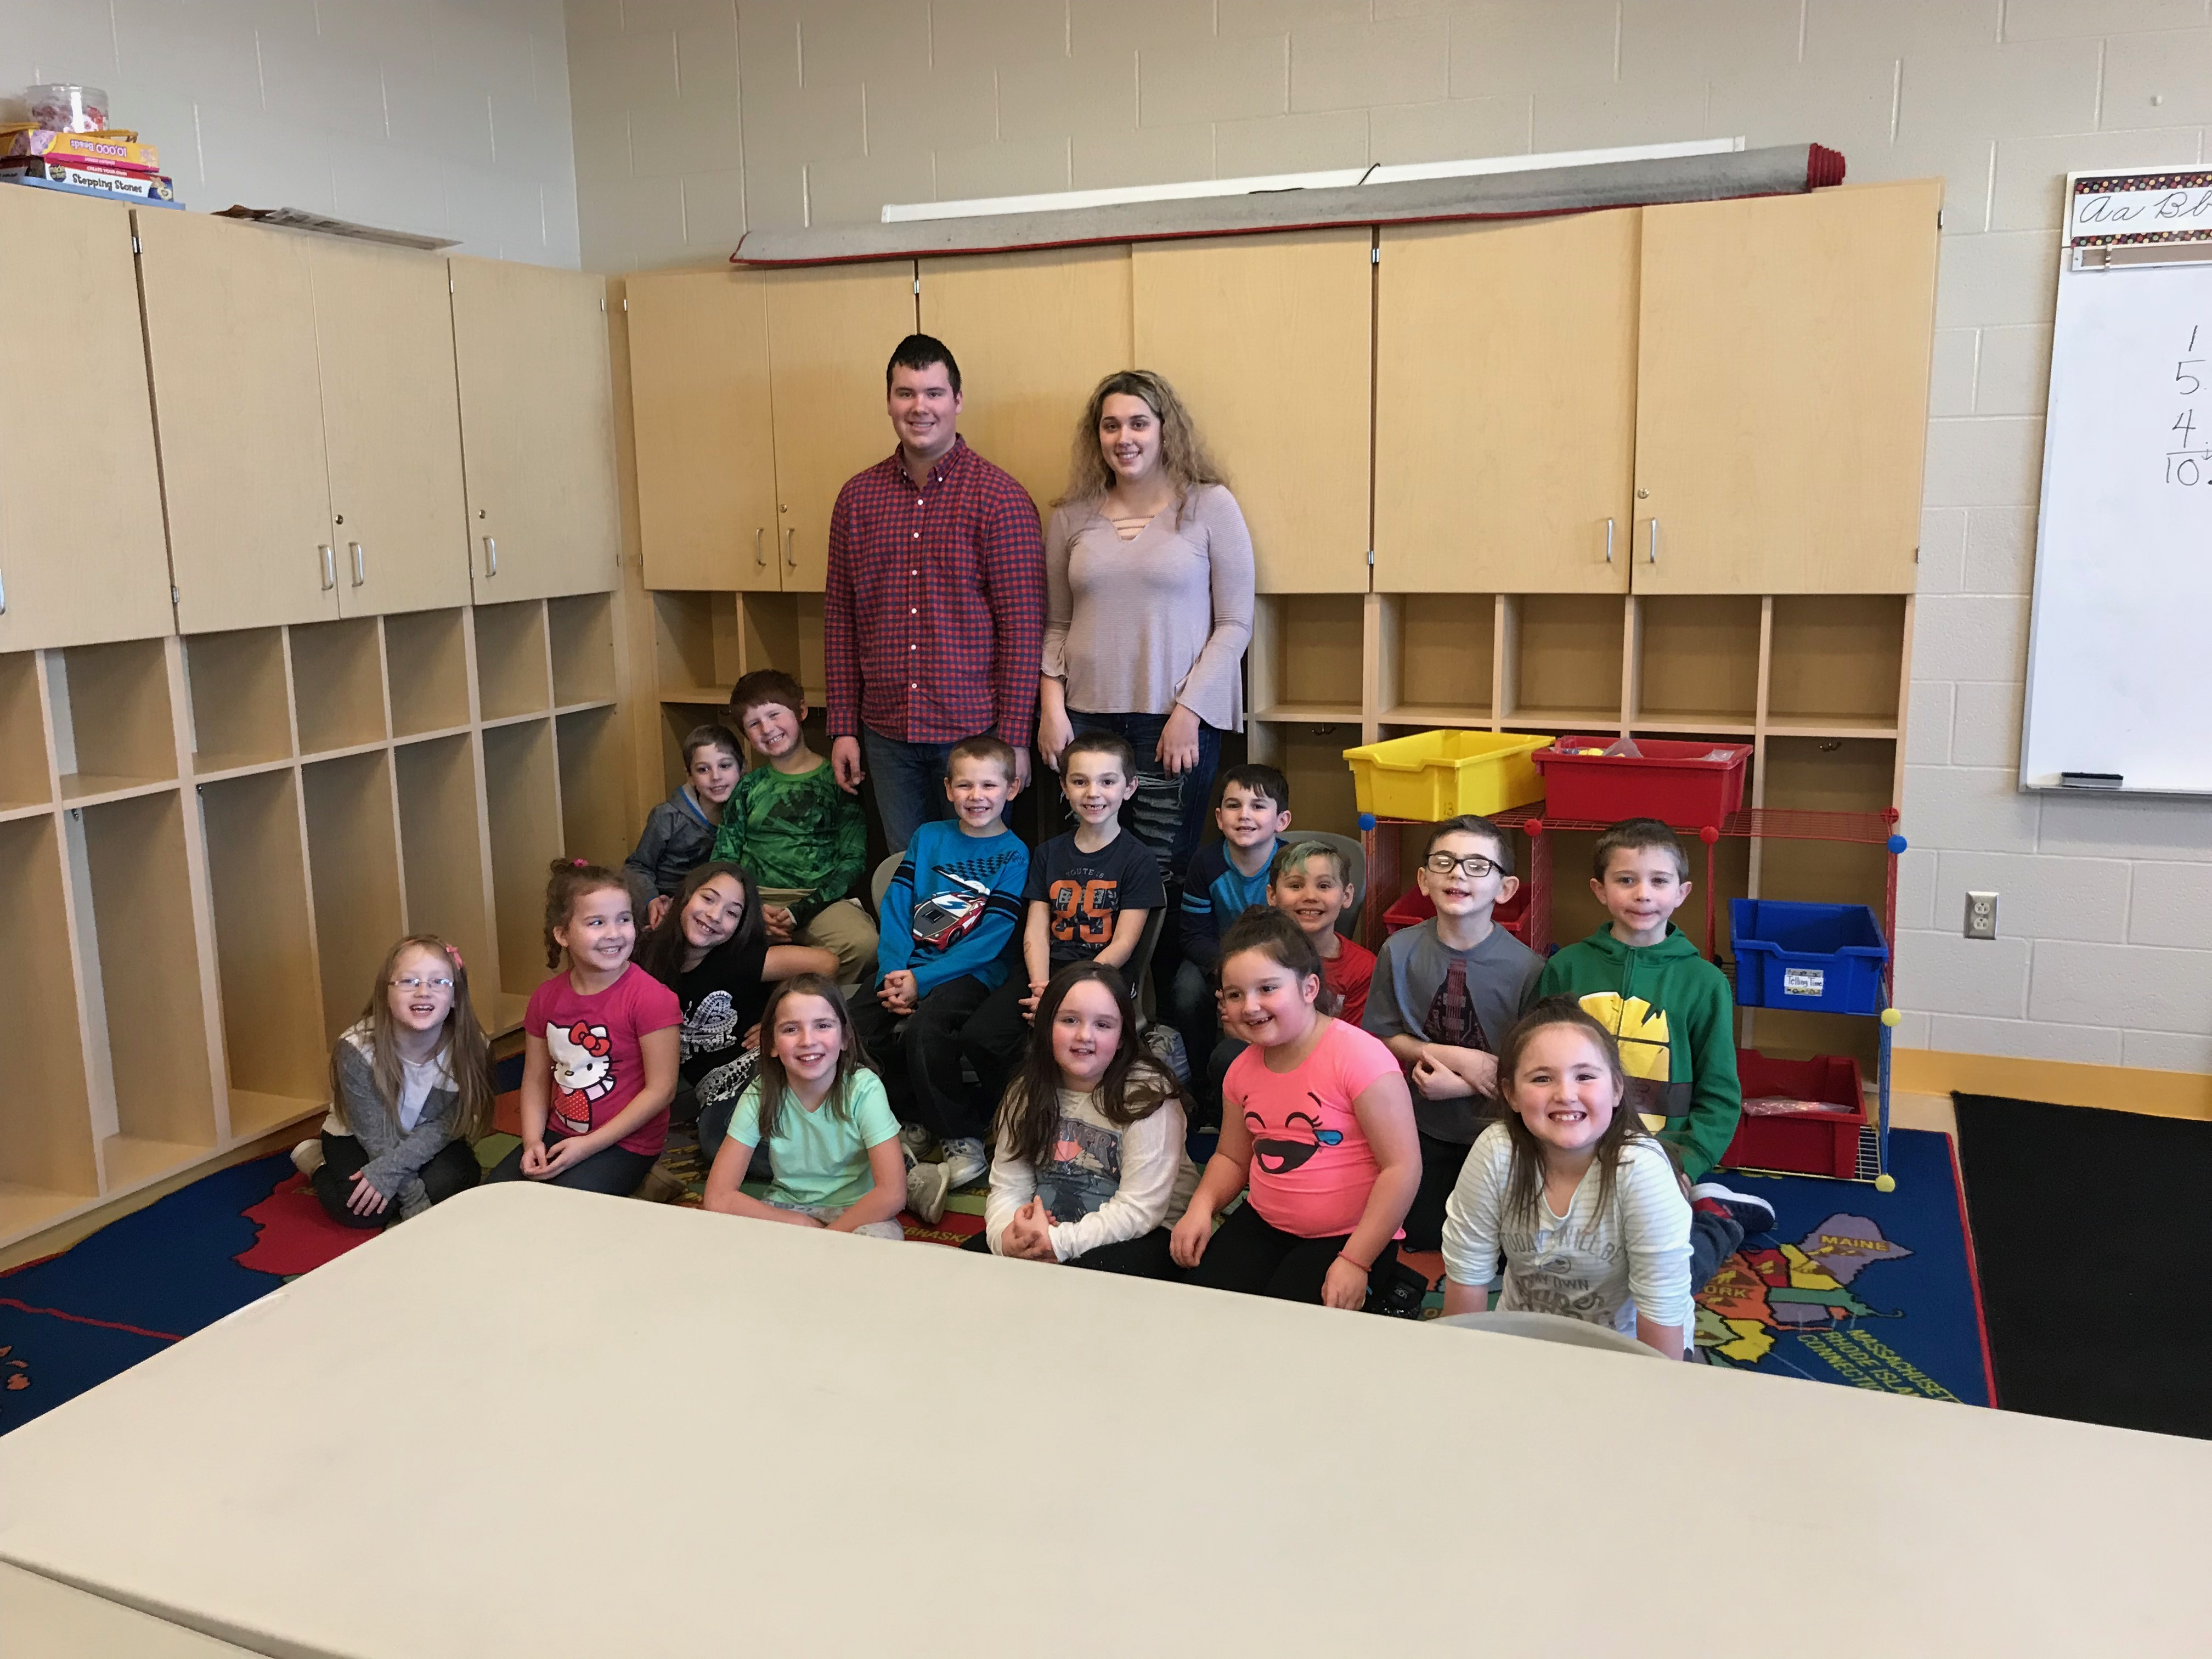 Dakota and Emily Obermiyer stand with the Brookfield Elementary students who participated in a reading study. Students are, front row, from left: Kayla Kikel, Ashten Keith, Isabella Montalvo, Lillian Trump, Gabriella Poggi, Mianna Cinicola and Teeaghan Kane. Back row: Greyson Berena, Daniel Bartha, Mason Davis, Blake Lough, Lane Pegg, Logan Huffman, Damien Raver and Shane Hoffman. The photo was provided by the school.